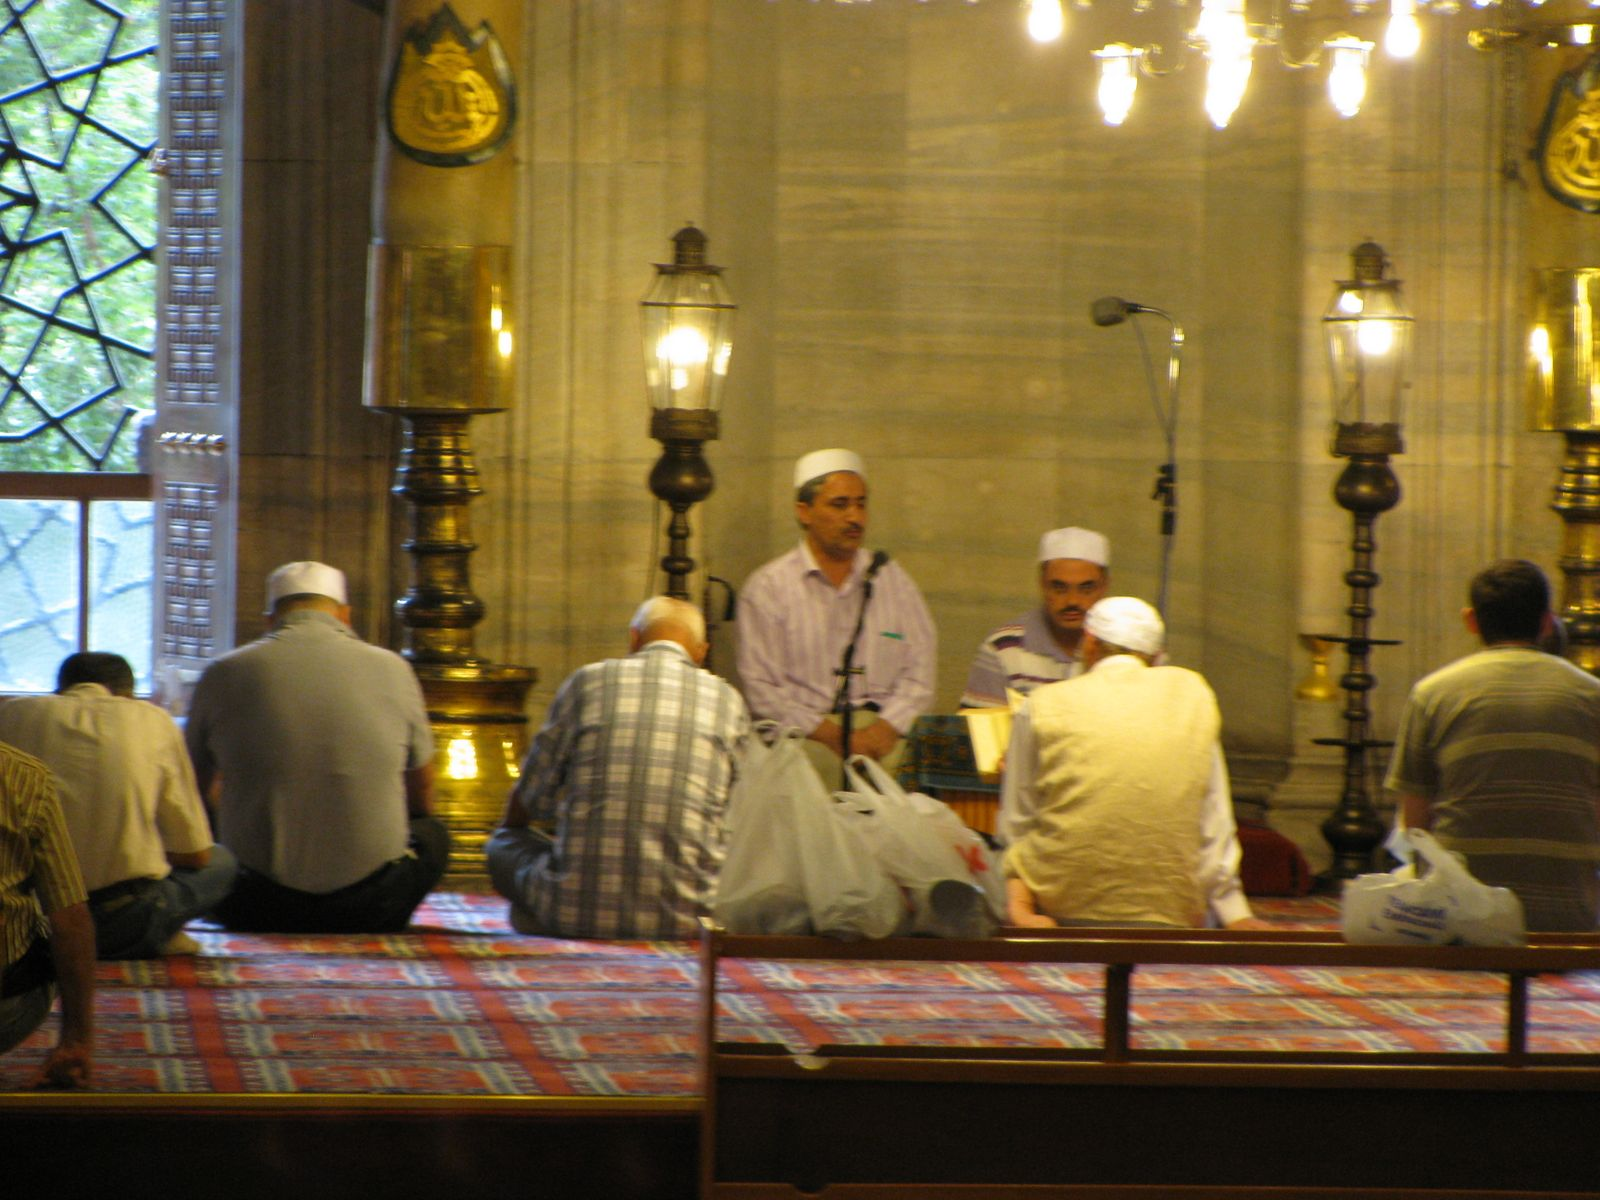 Muslims studying in a mosque